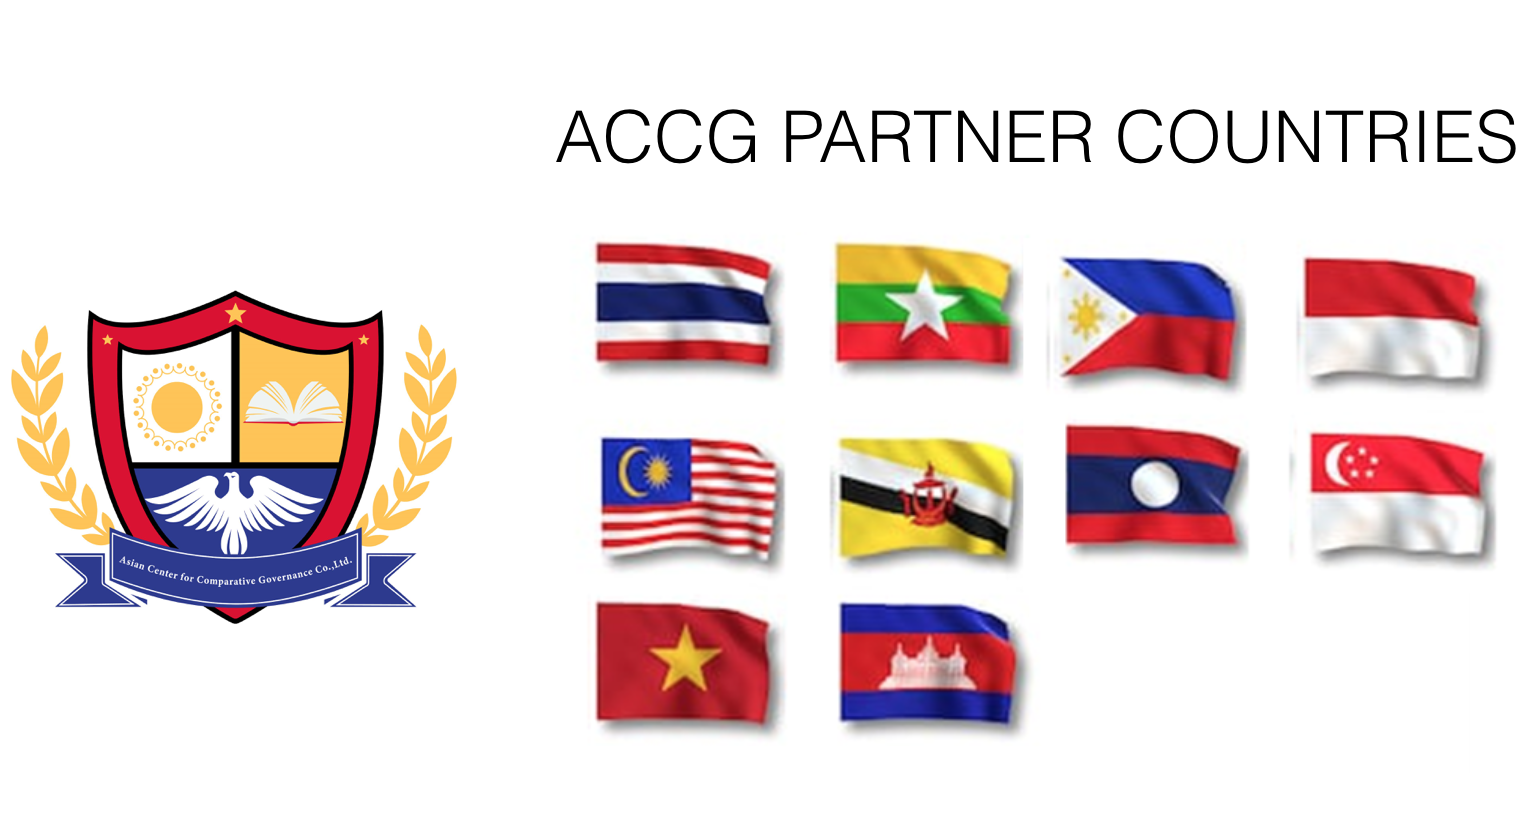 ACCG Partner Countries